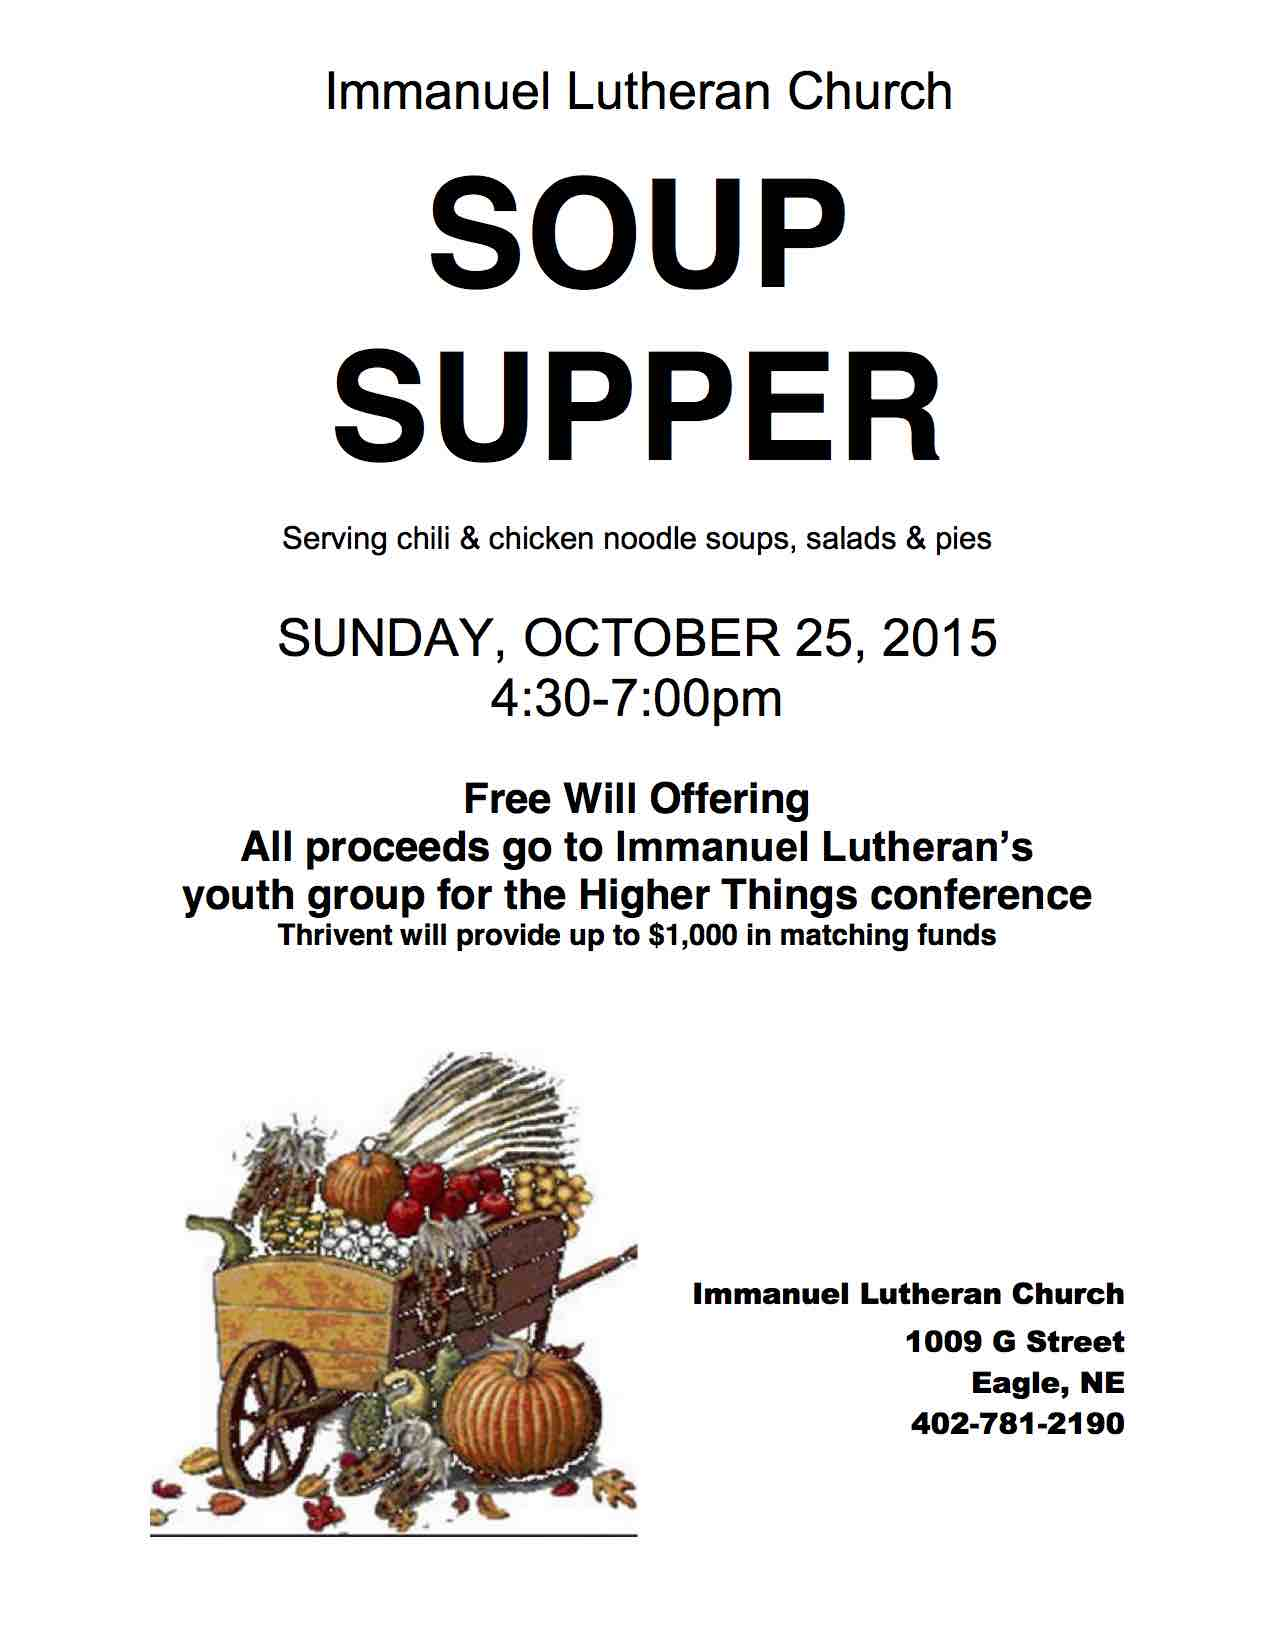 Soup Supper Flyer 2015